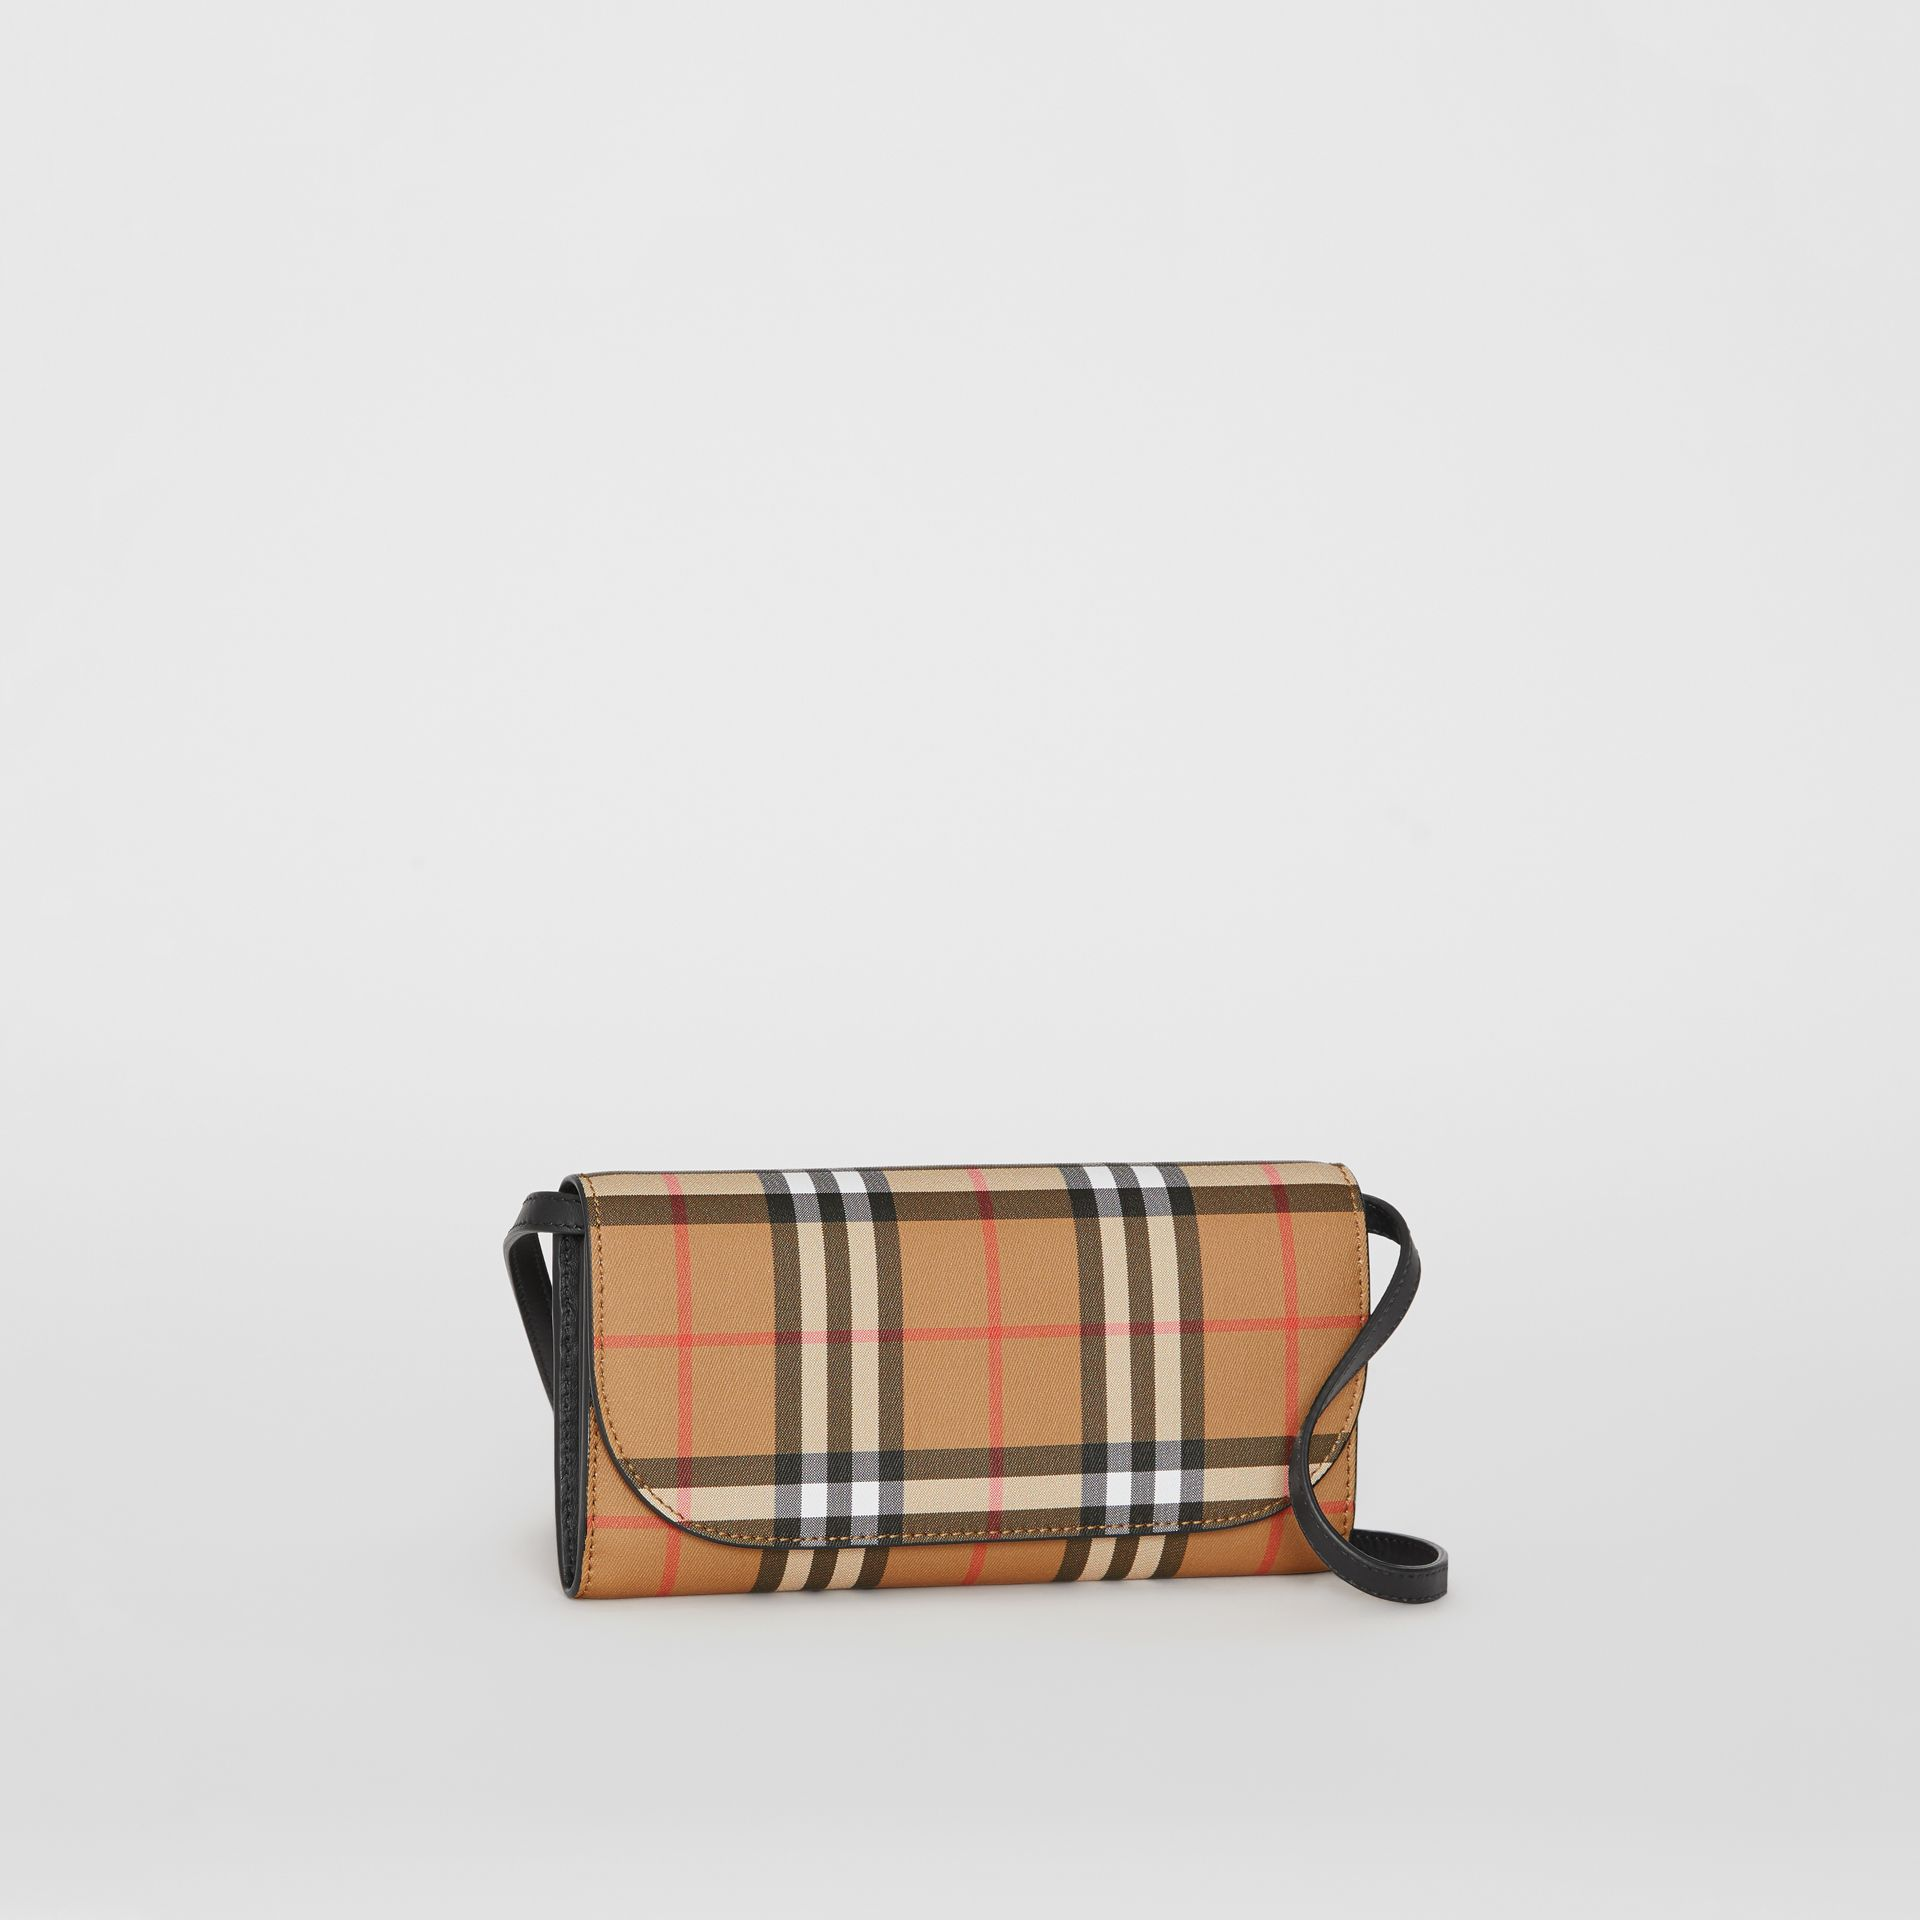 Detachable Strap Vintage Check Leather Wallet in Black - Women | Burberry - gallery image 6